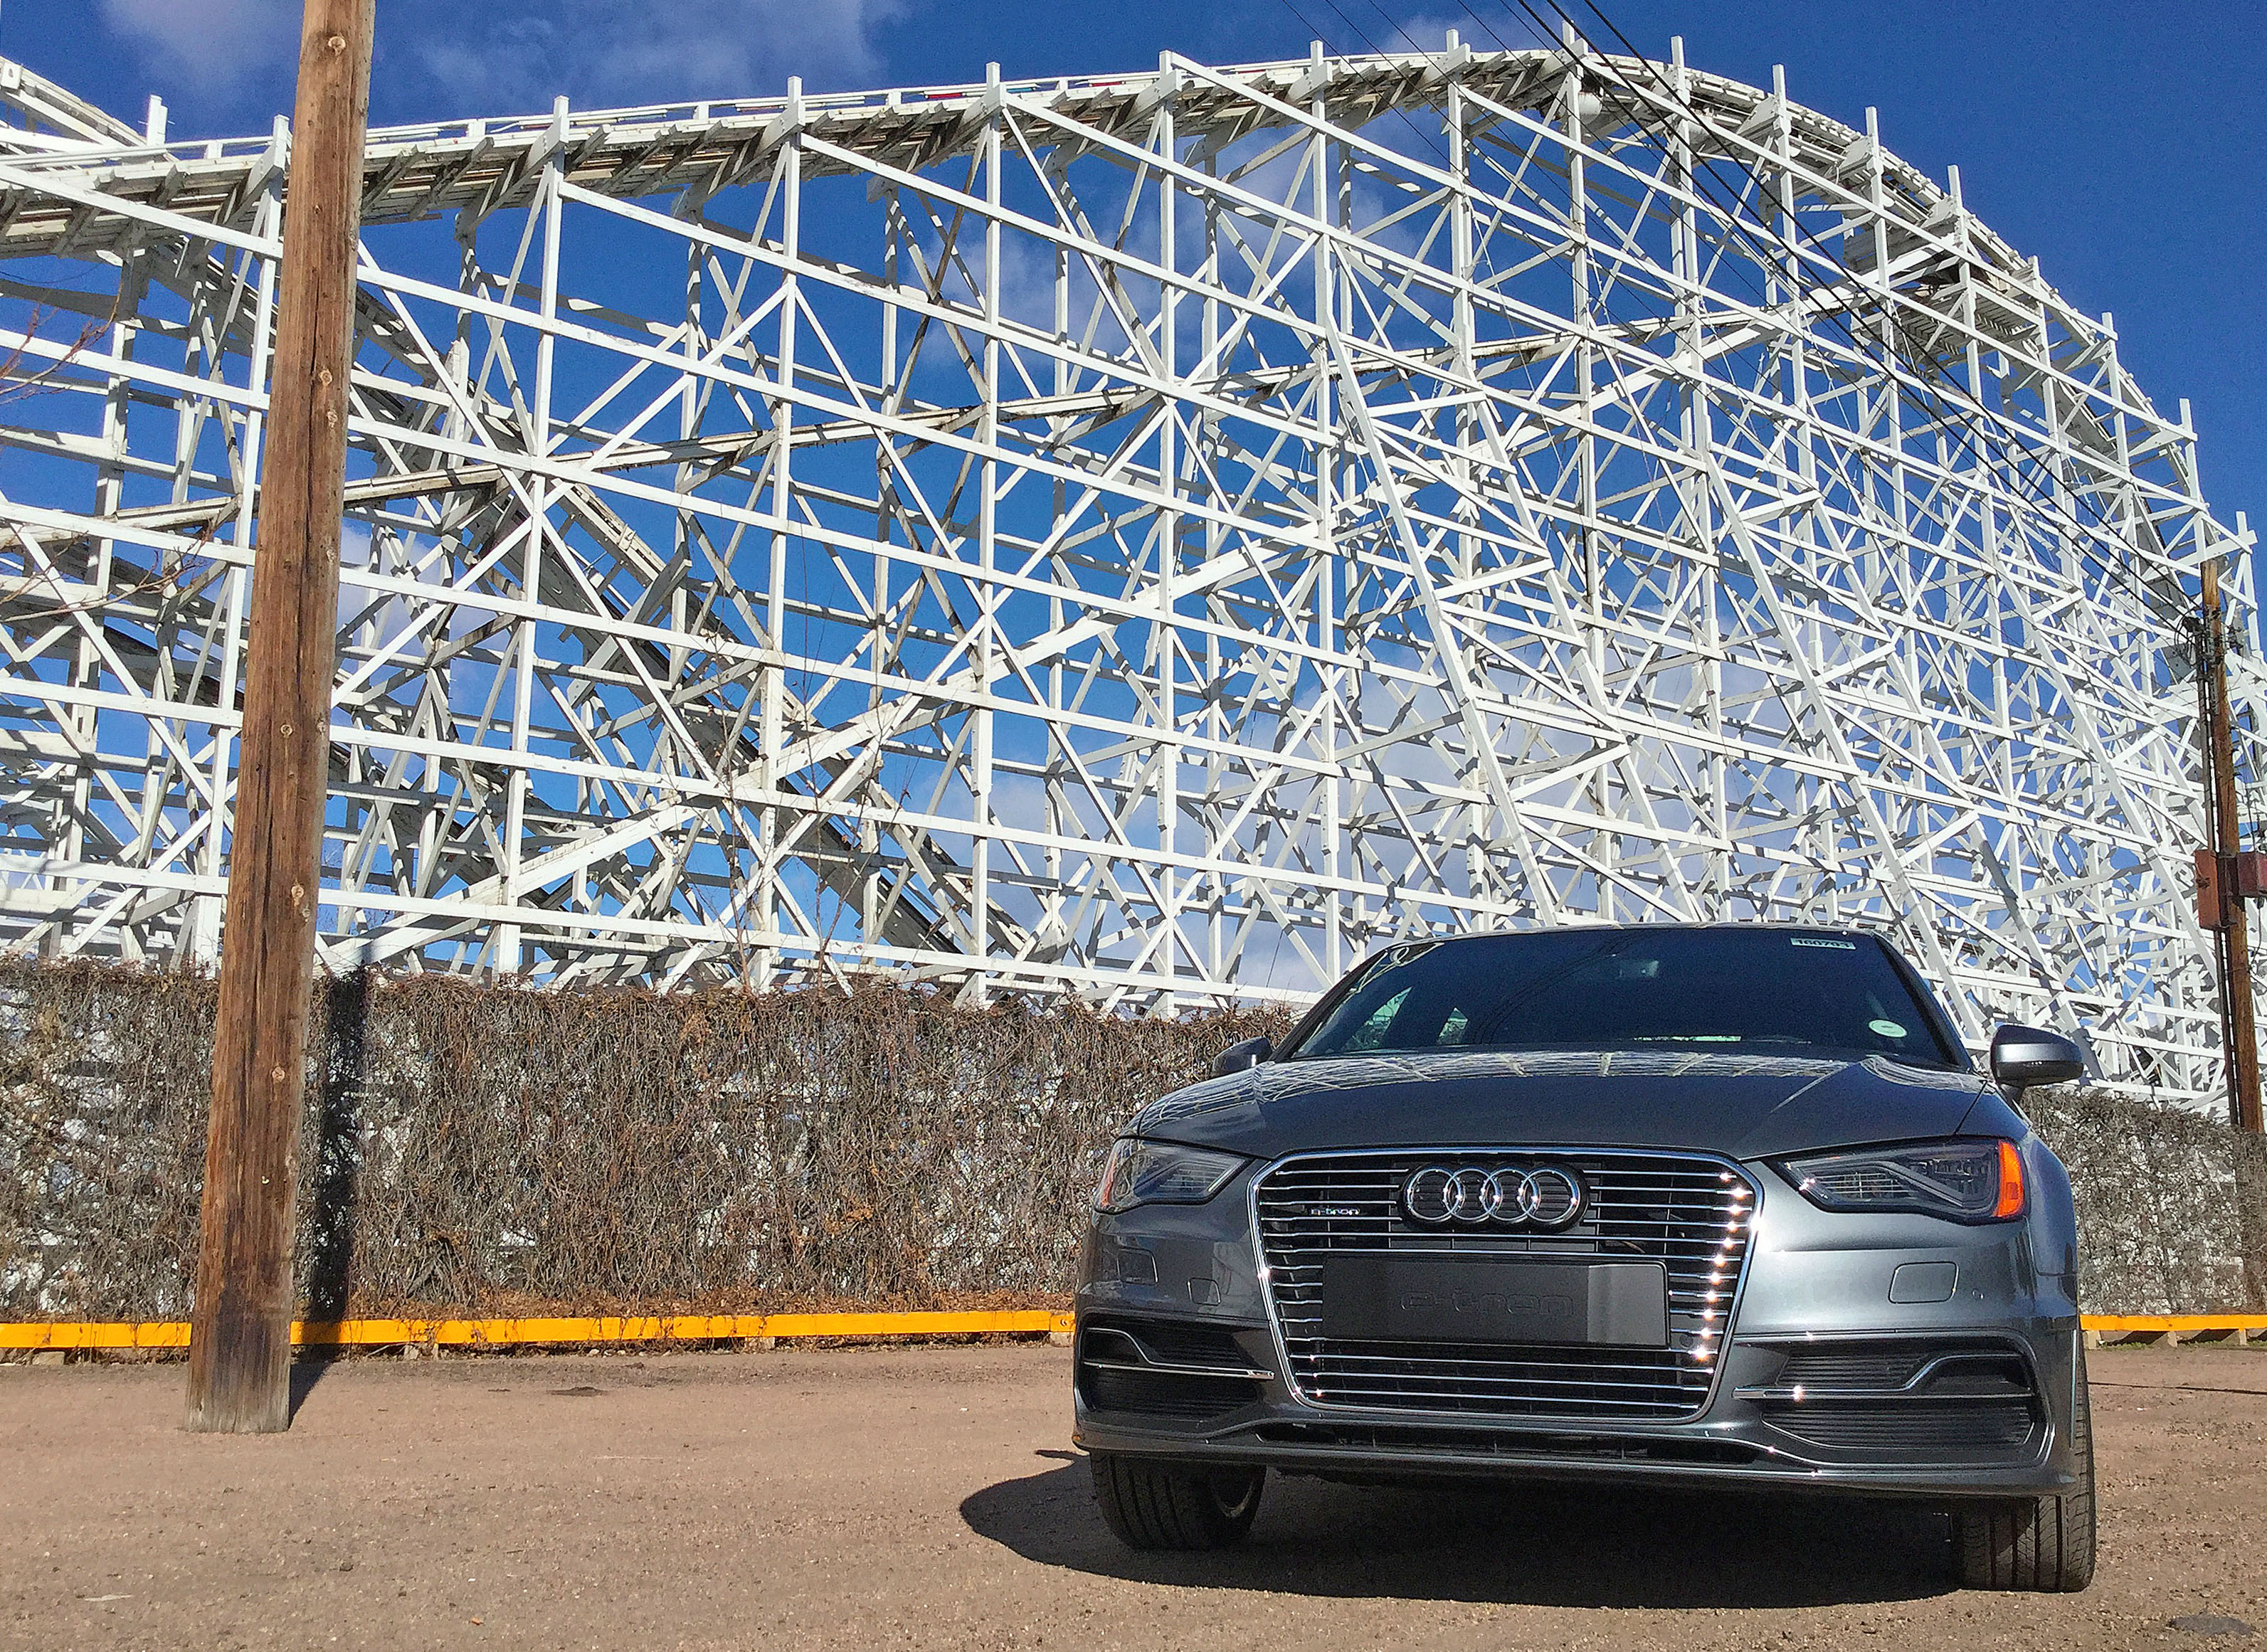 Audi A3 e-tron parked in front of the Cyclone Roller Coaster at Lakeside Amusement Park near Denver, CO.